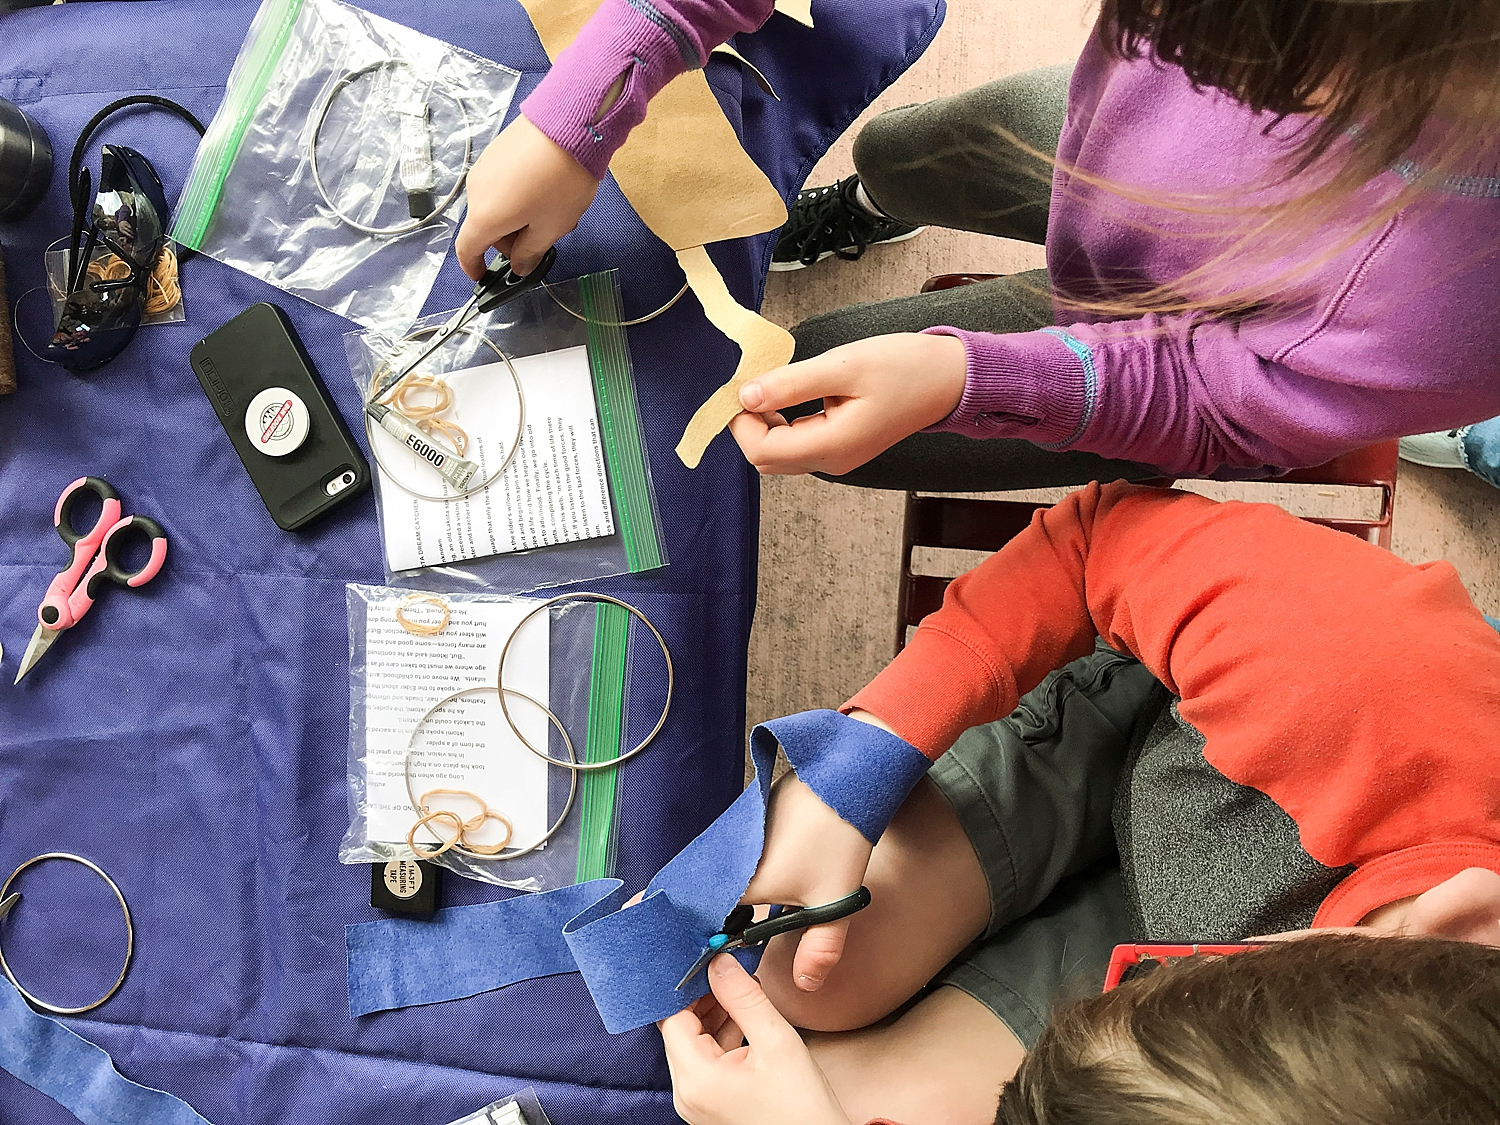 The kids made their own dream catchers in this week's week in the life of an unschooler!